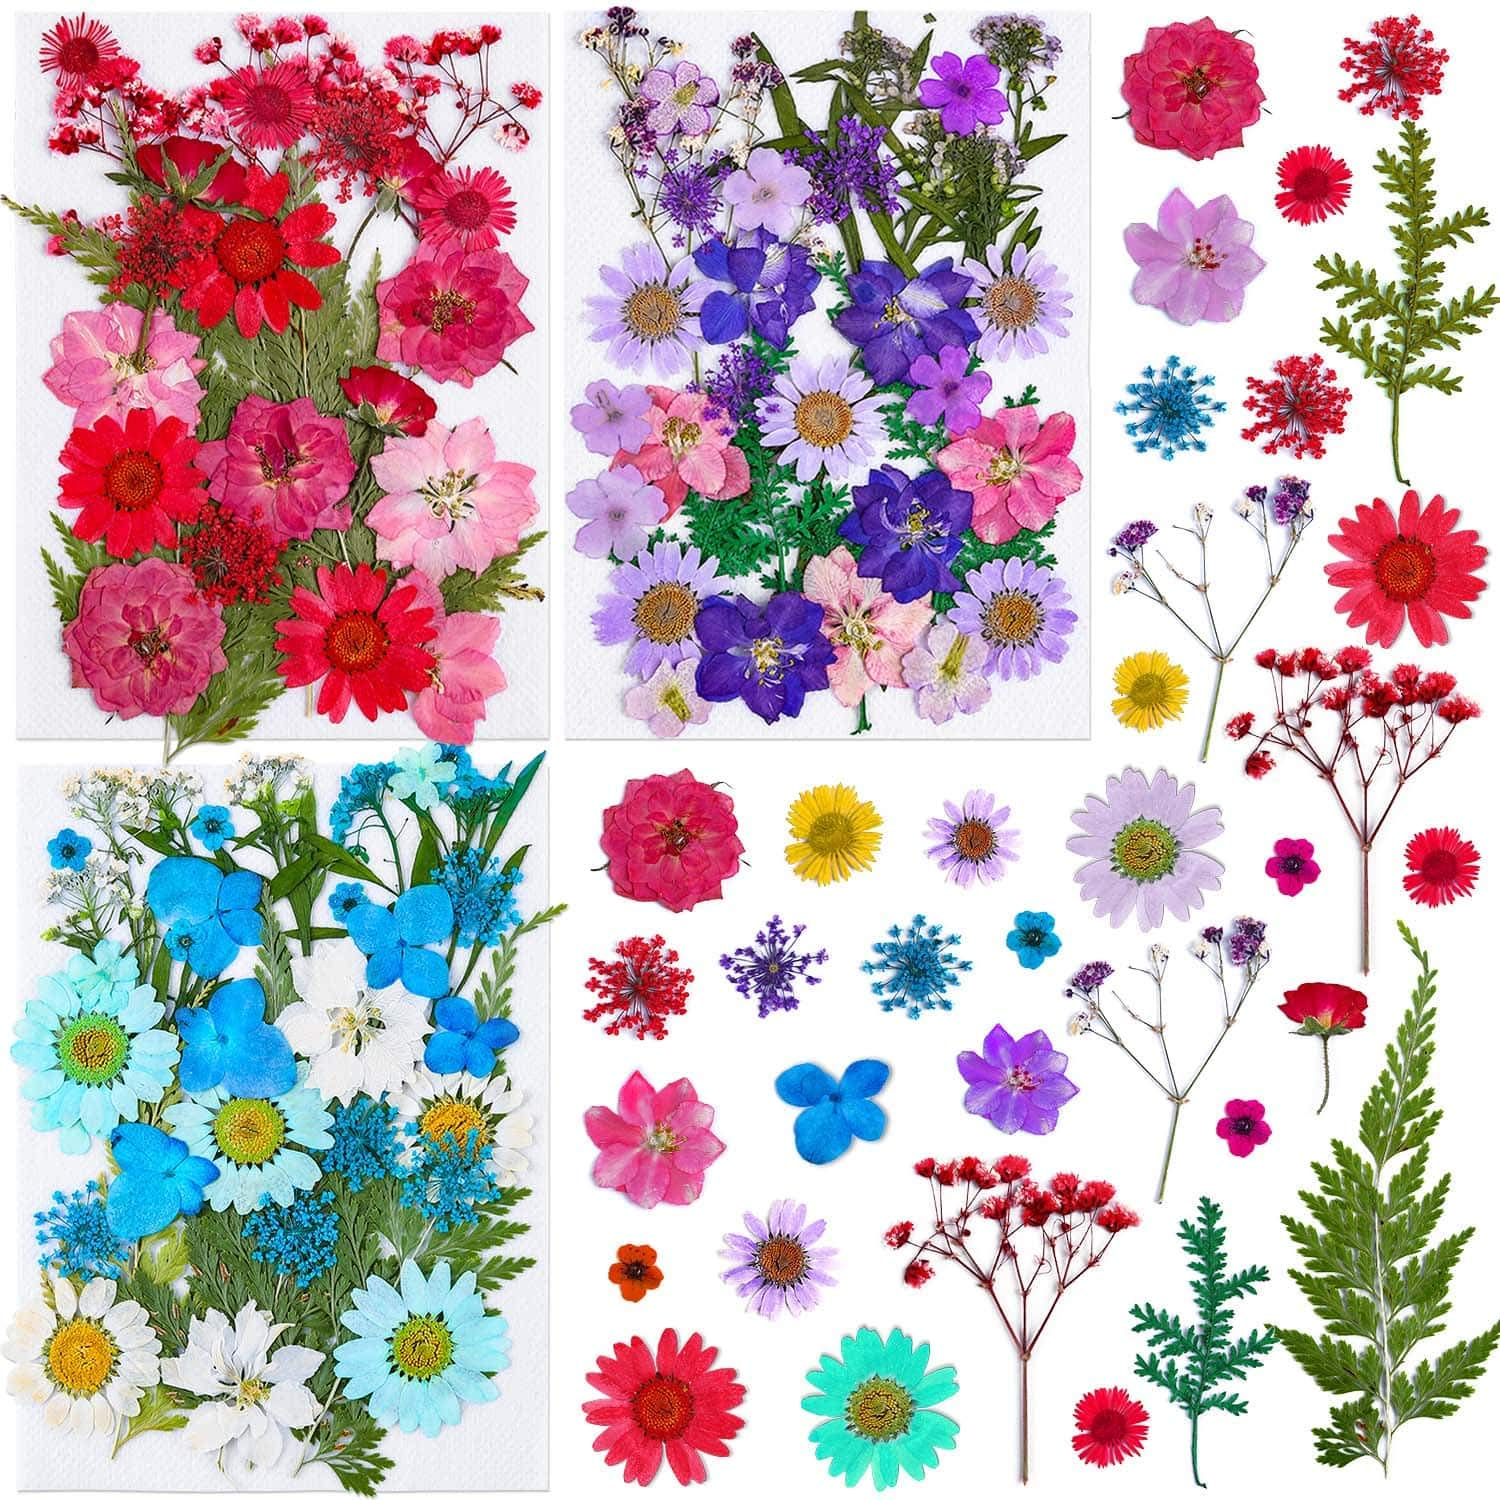 100Pcs Pressed Dried Flowers for Resin, Thrilez Natural Dried Flower Herbs kit for Resin Jewelry Making Soap and Candle Making(Blue, Purple, Red)